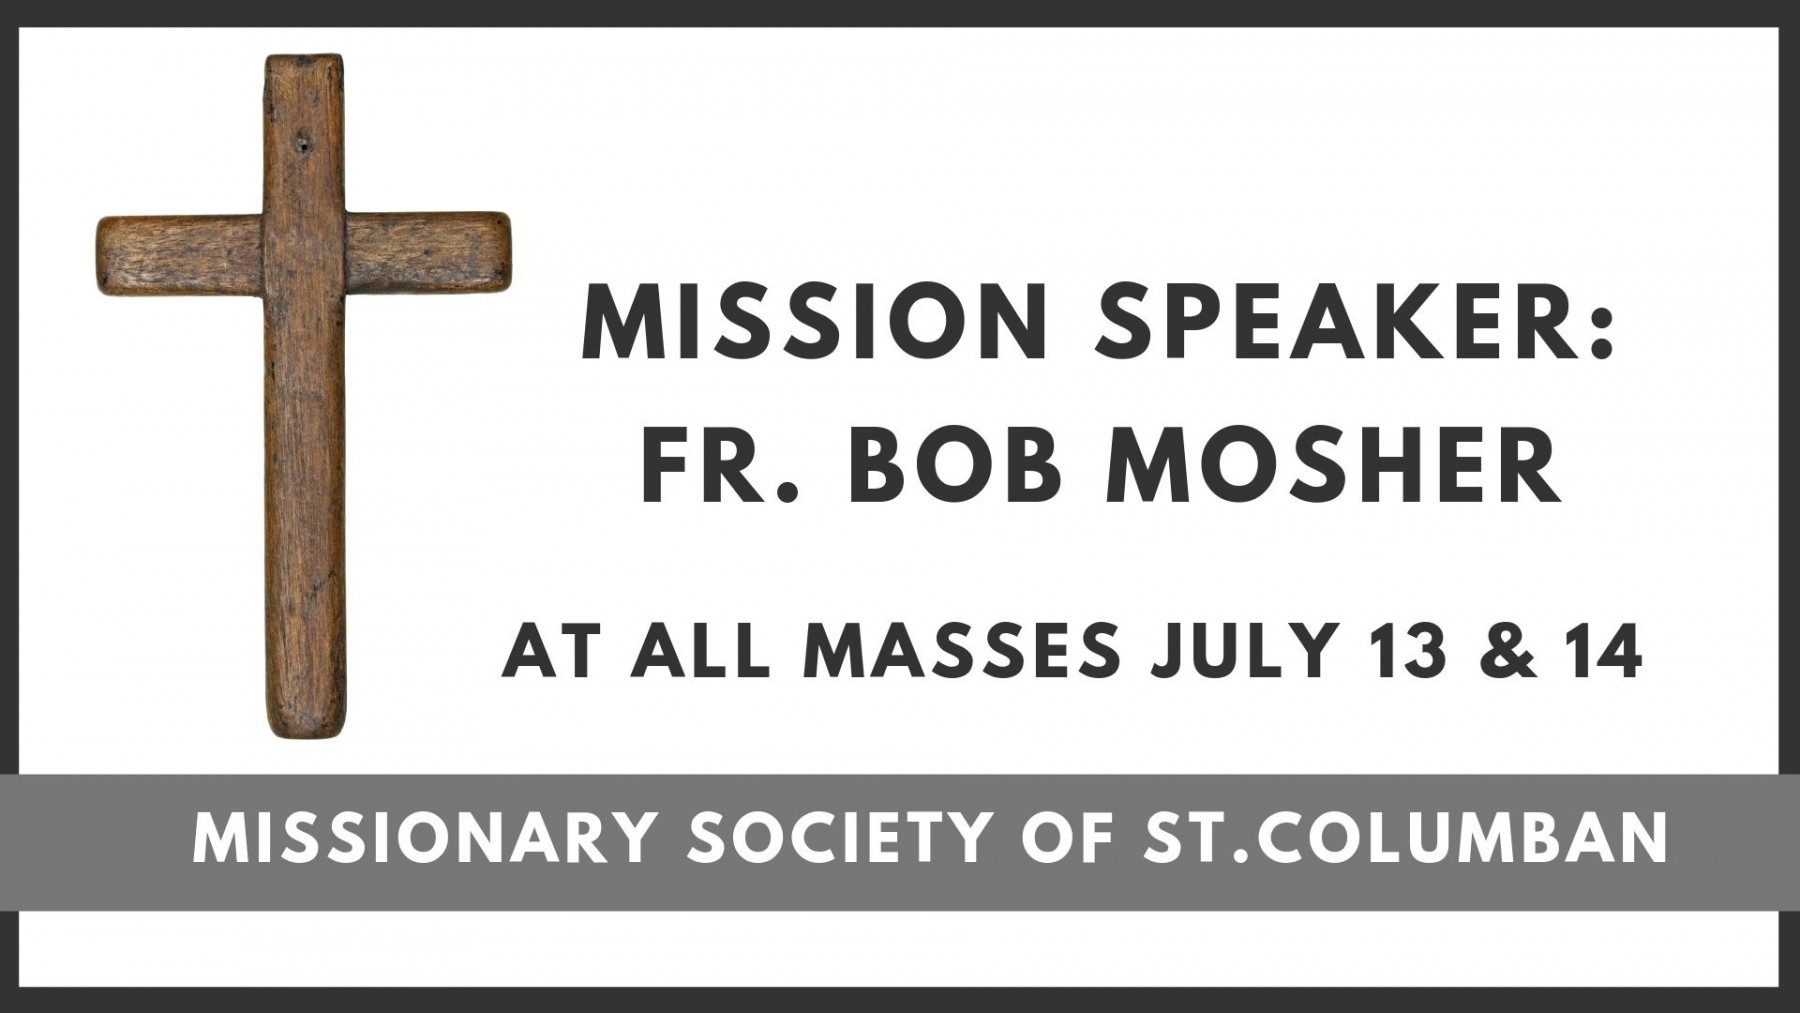 Special Presider and Collection for the Missionary Society of St. Columban